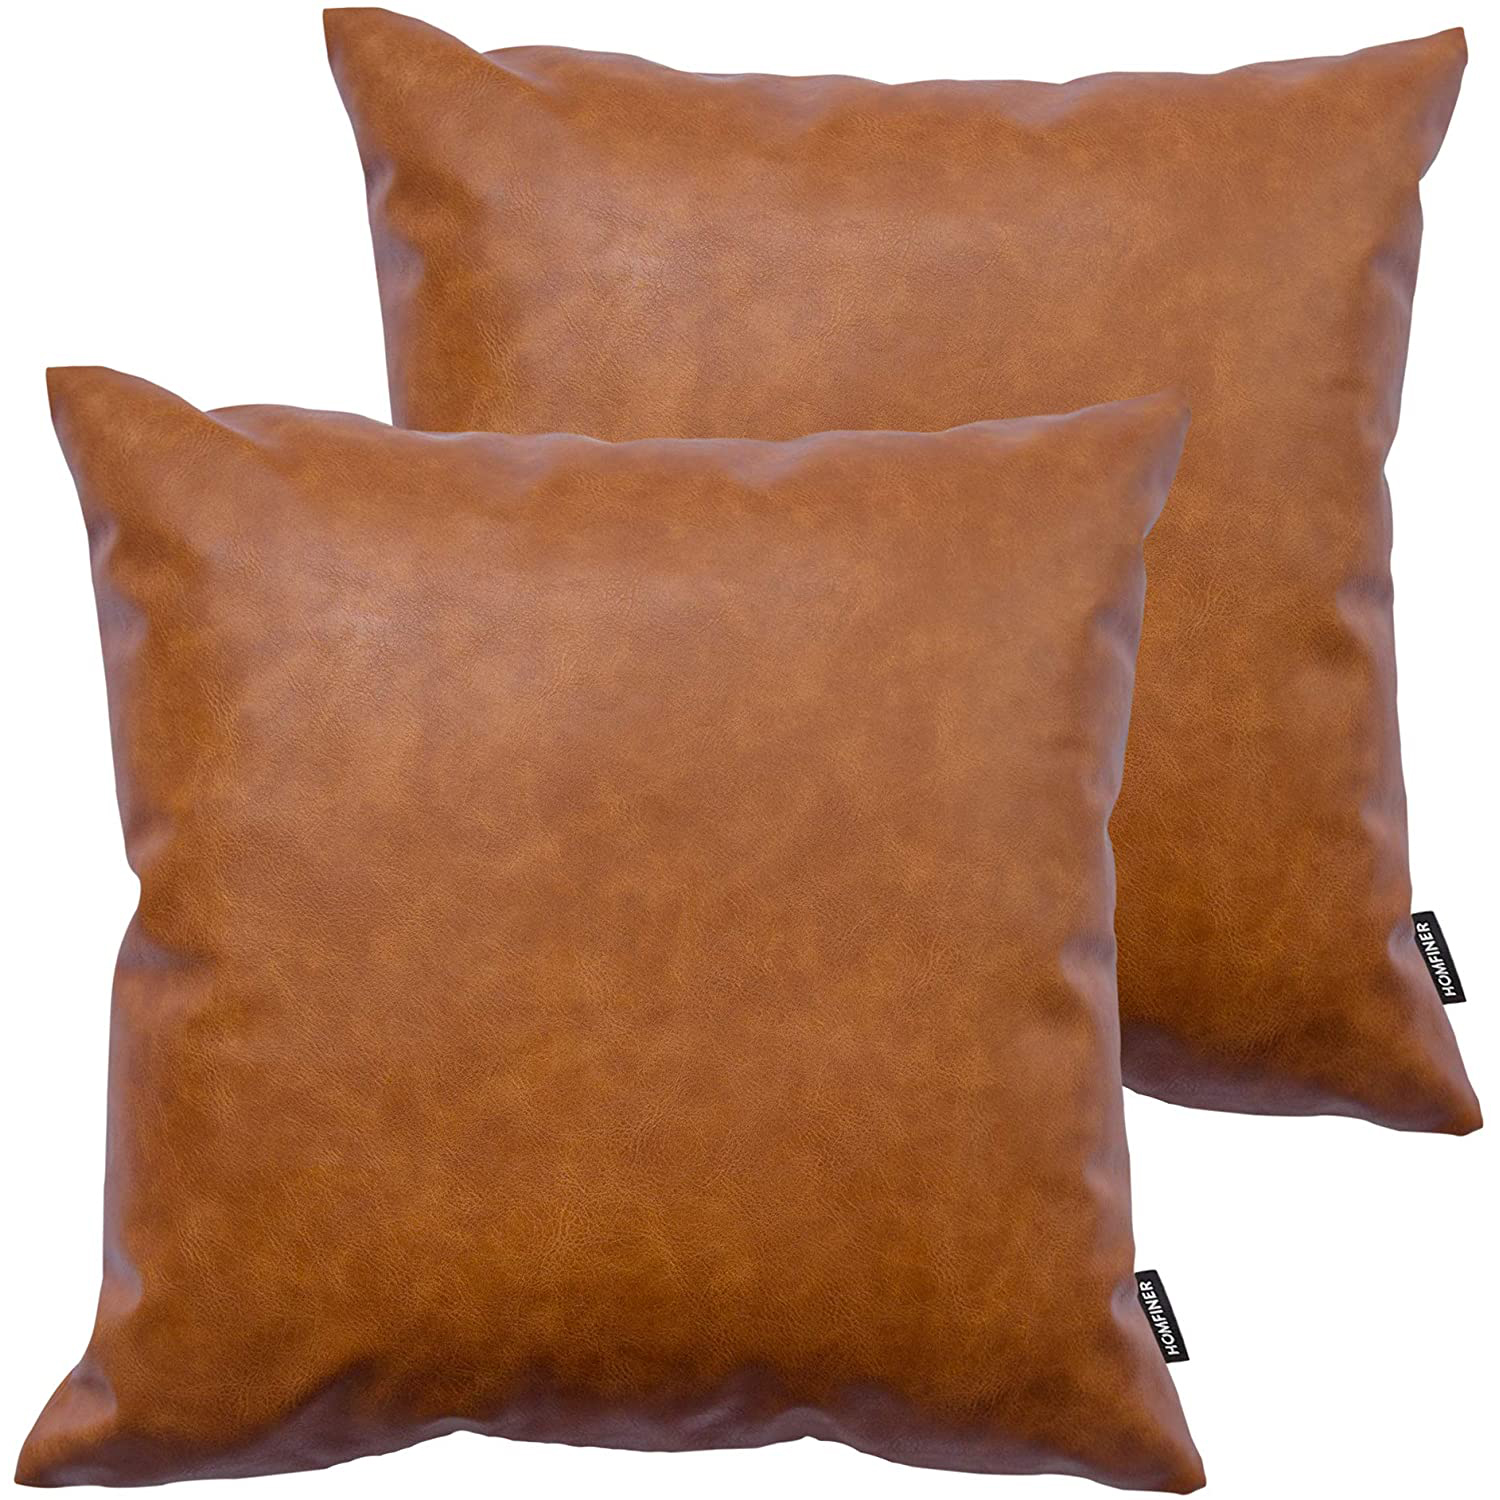 Homfiner pillow covers